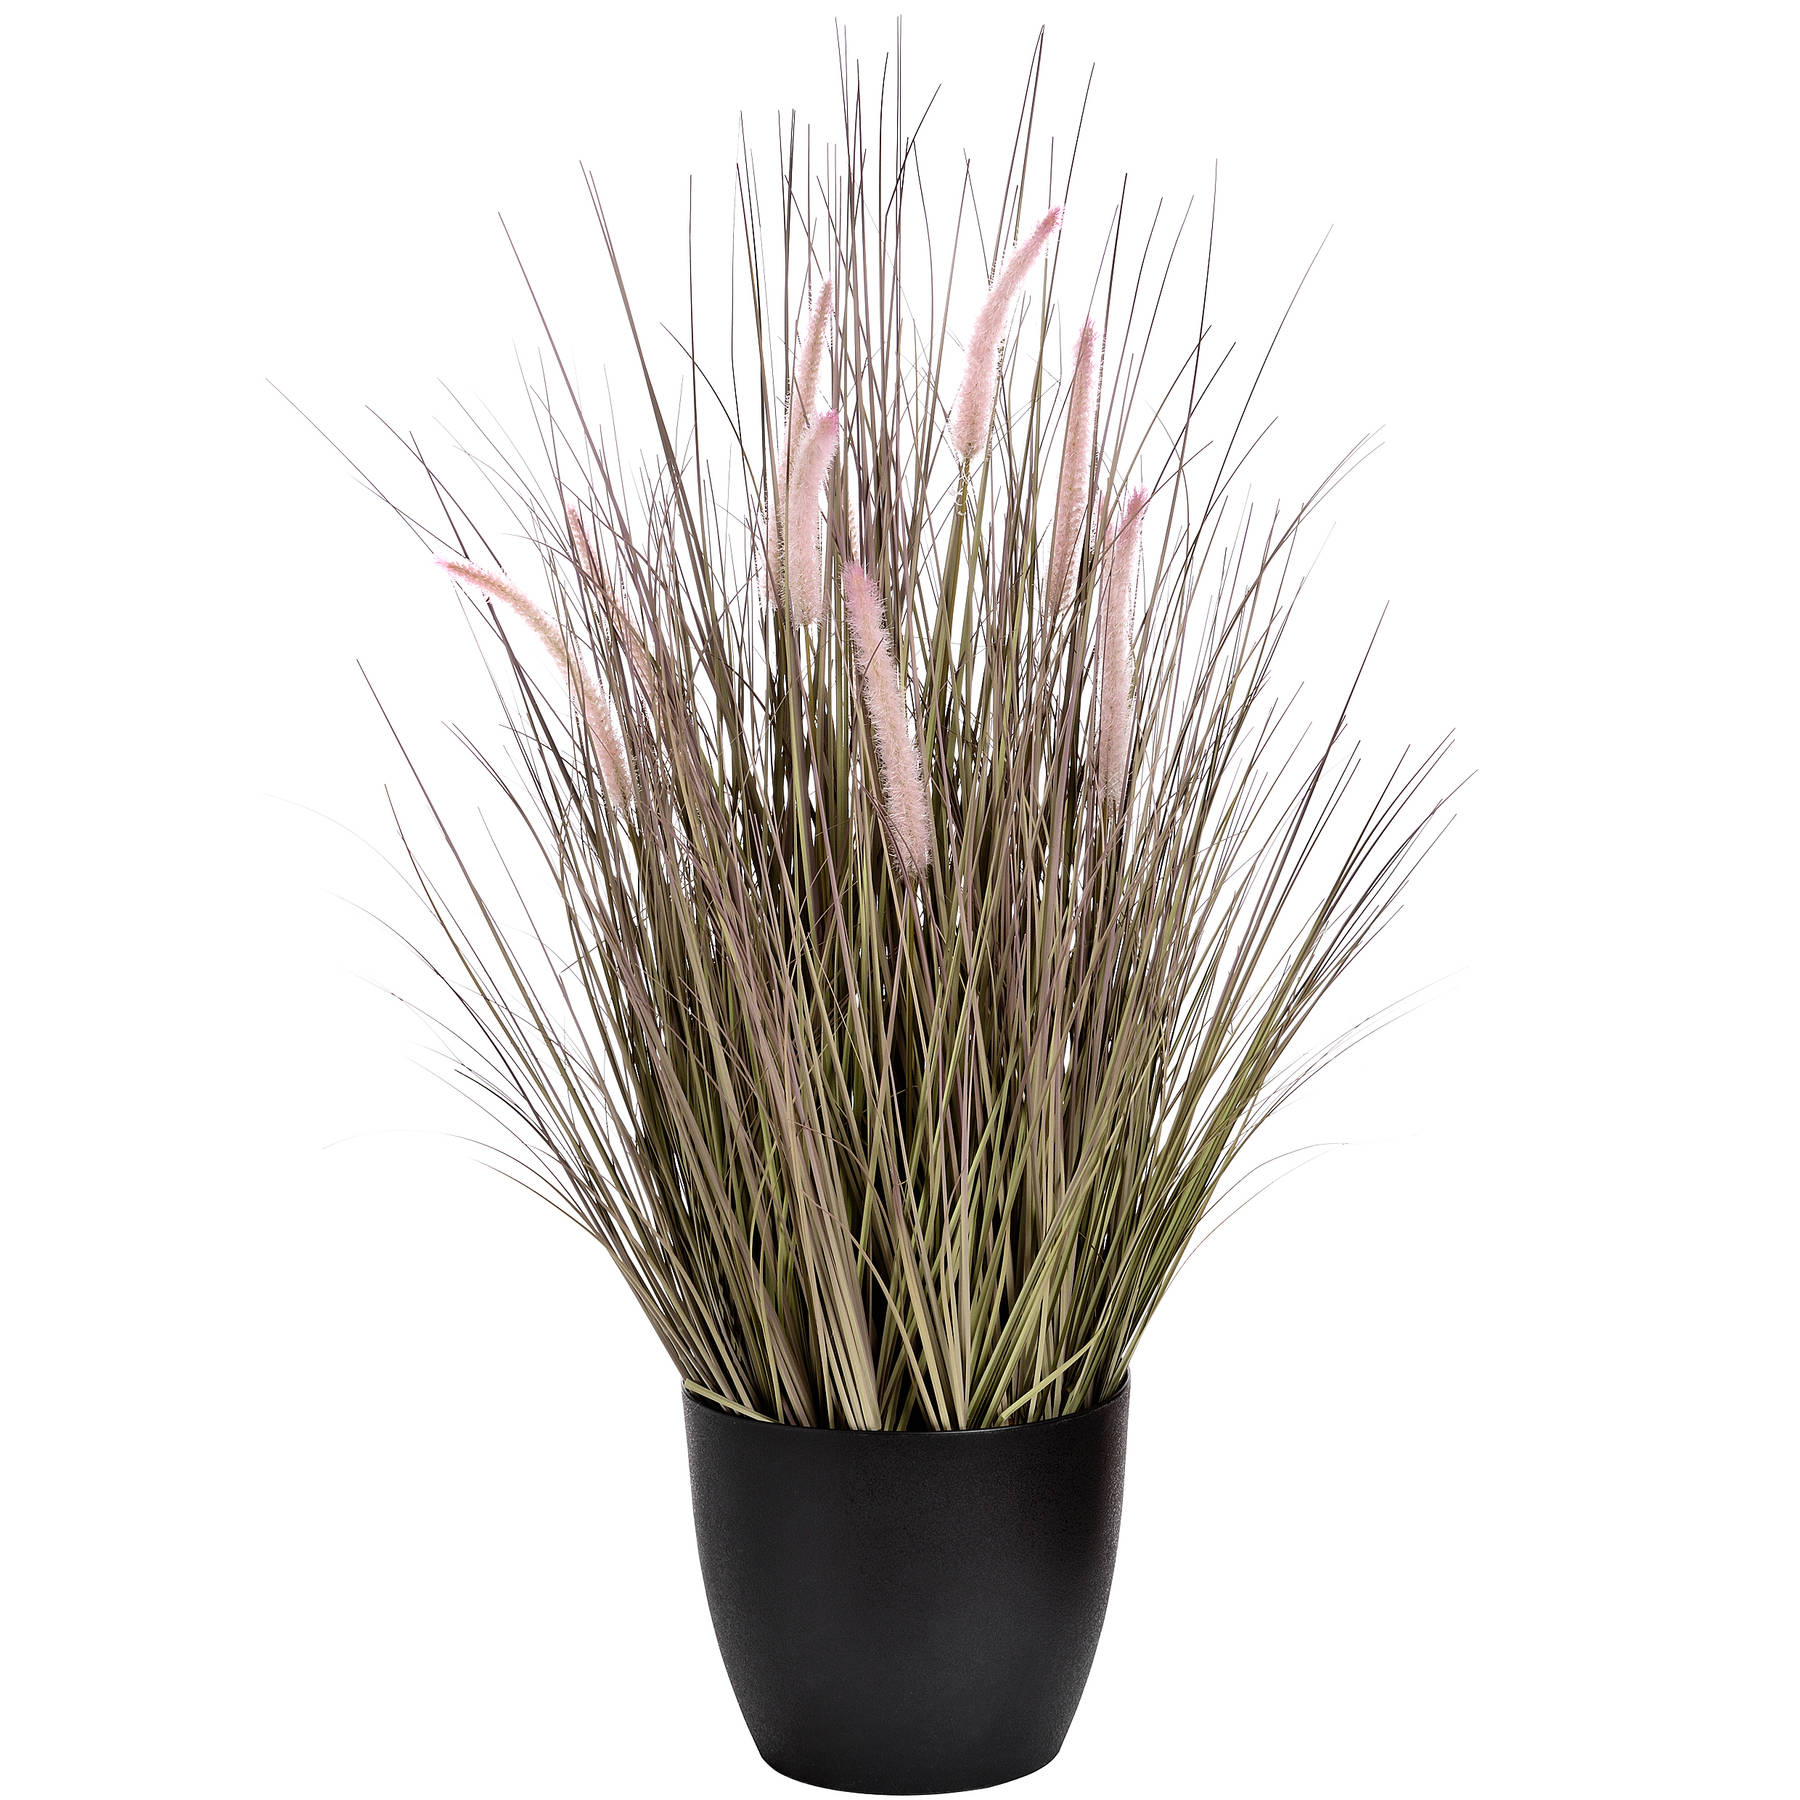 Wild Grasses, Black Pot 92cm